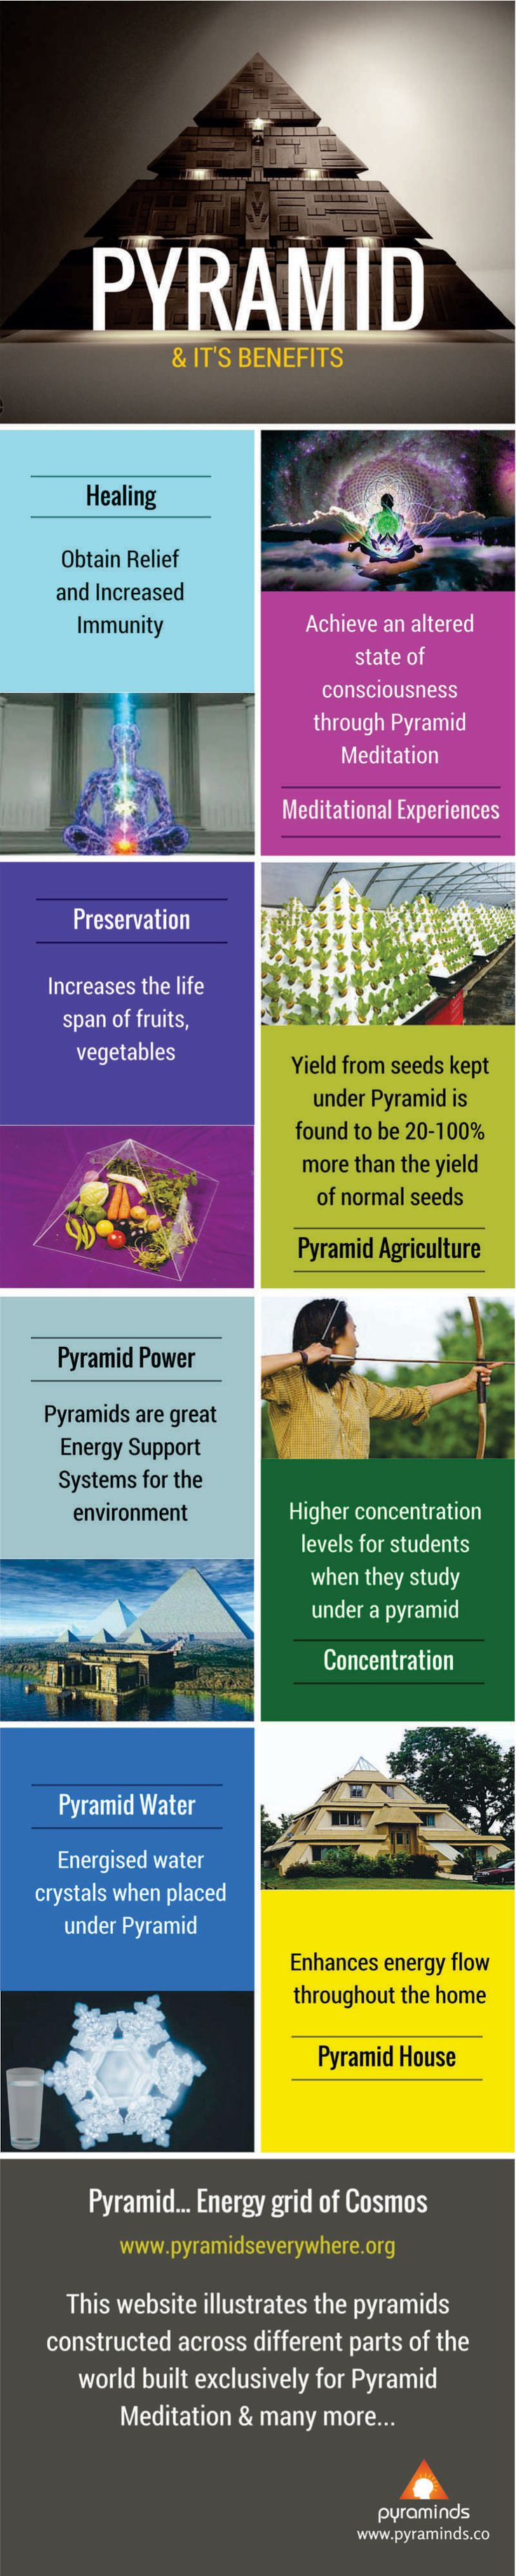 Pyramid-and-its-Benefits